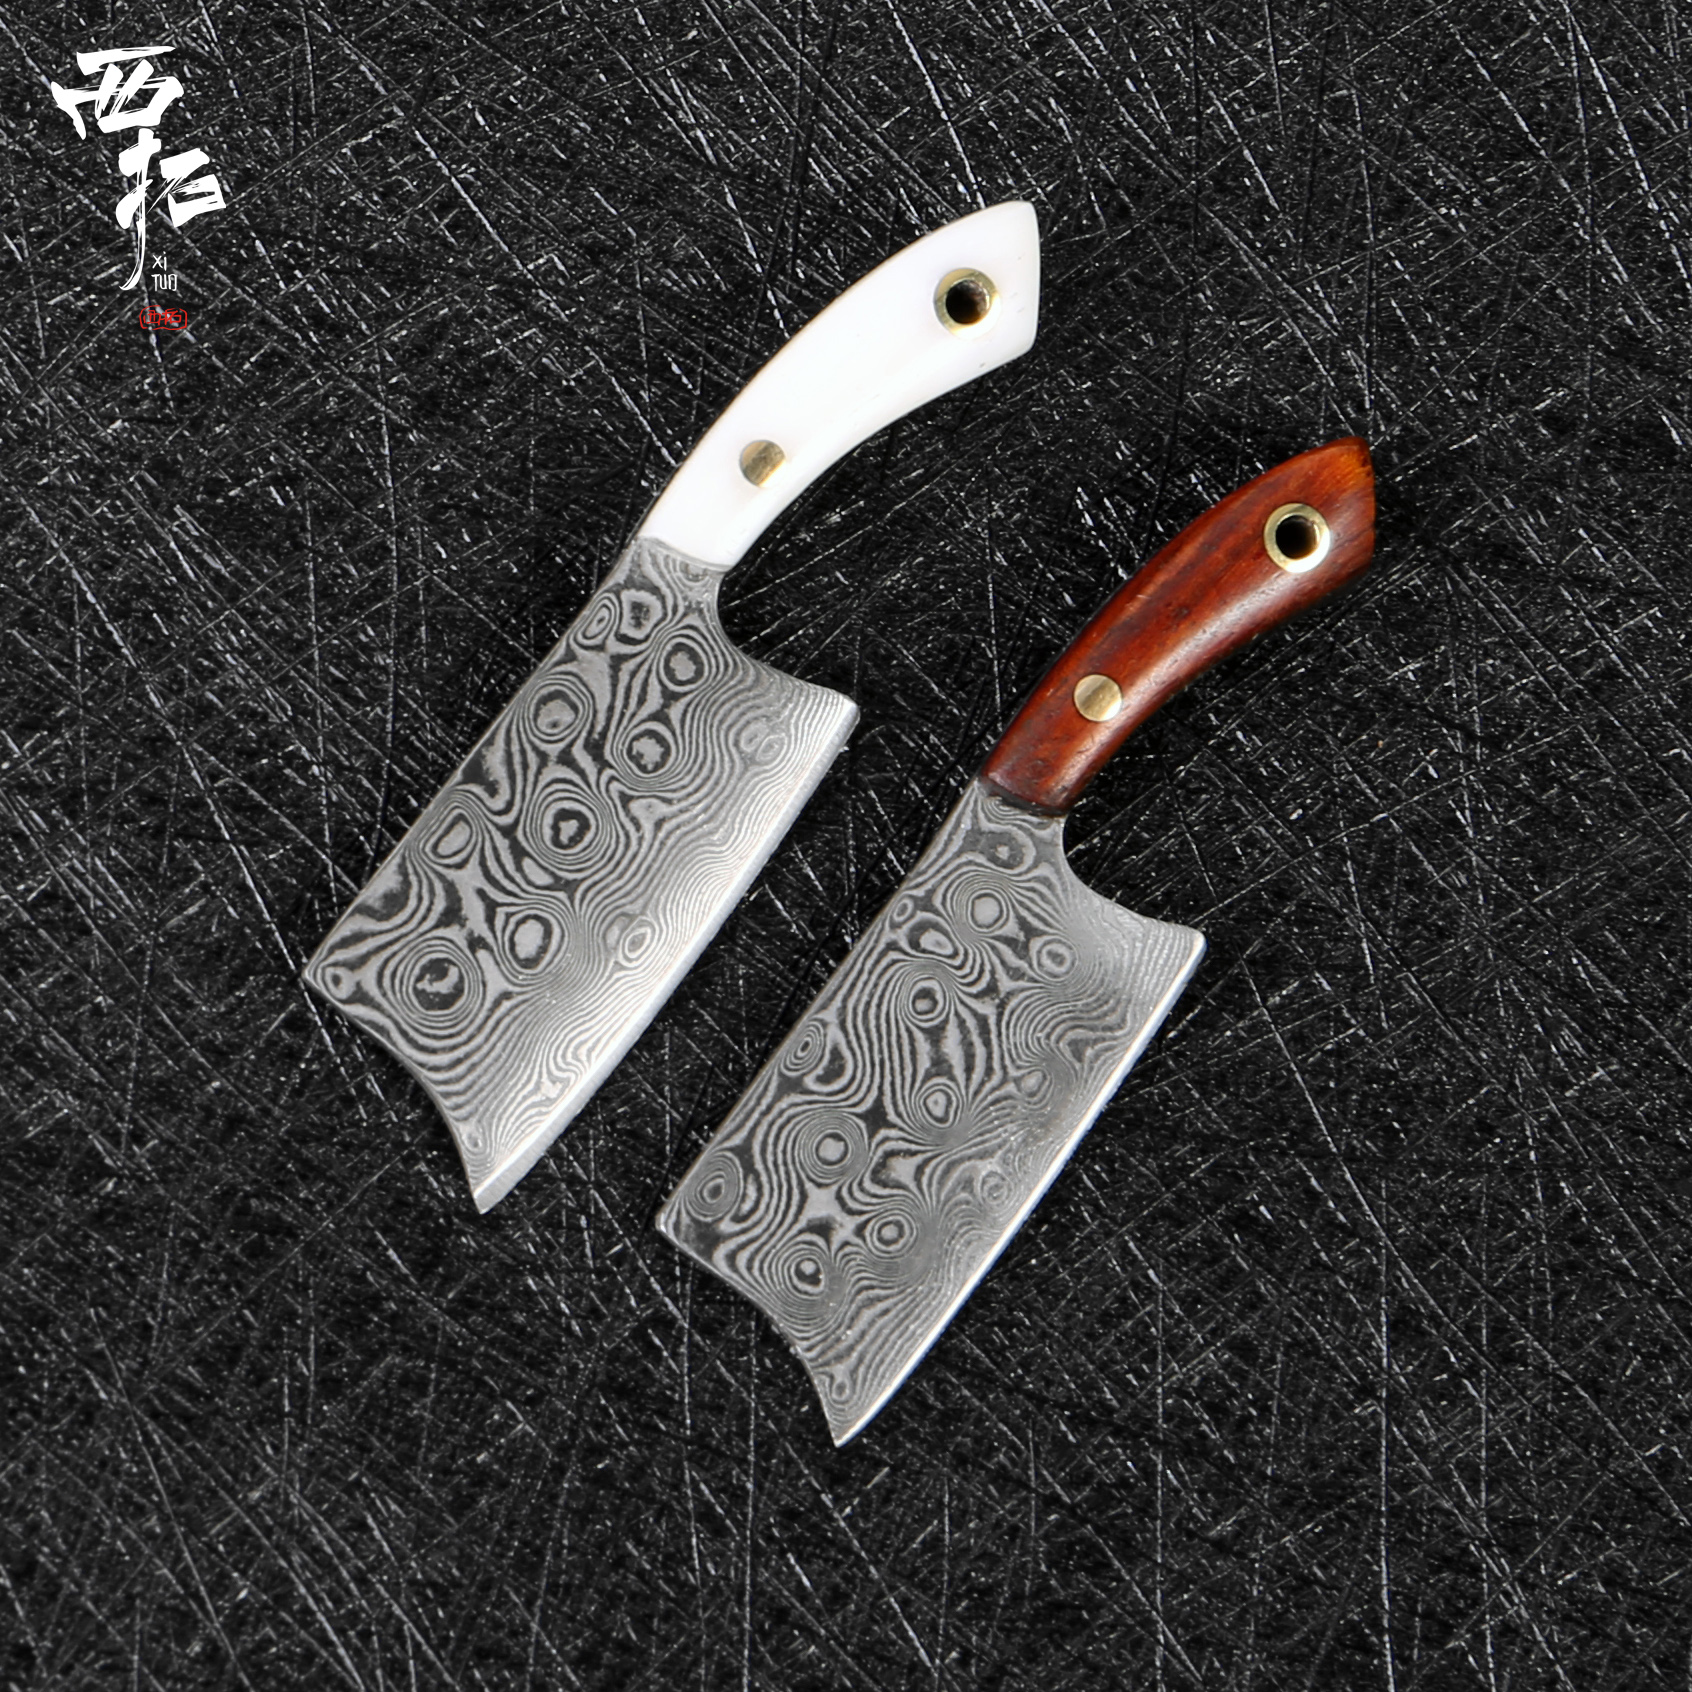 XITUO Paring Knife Keychain-Collection Steel Kitchen Gift Outdoor Hot Daily-Carry Boutique